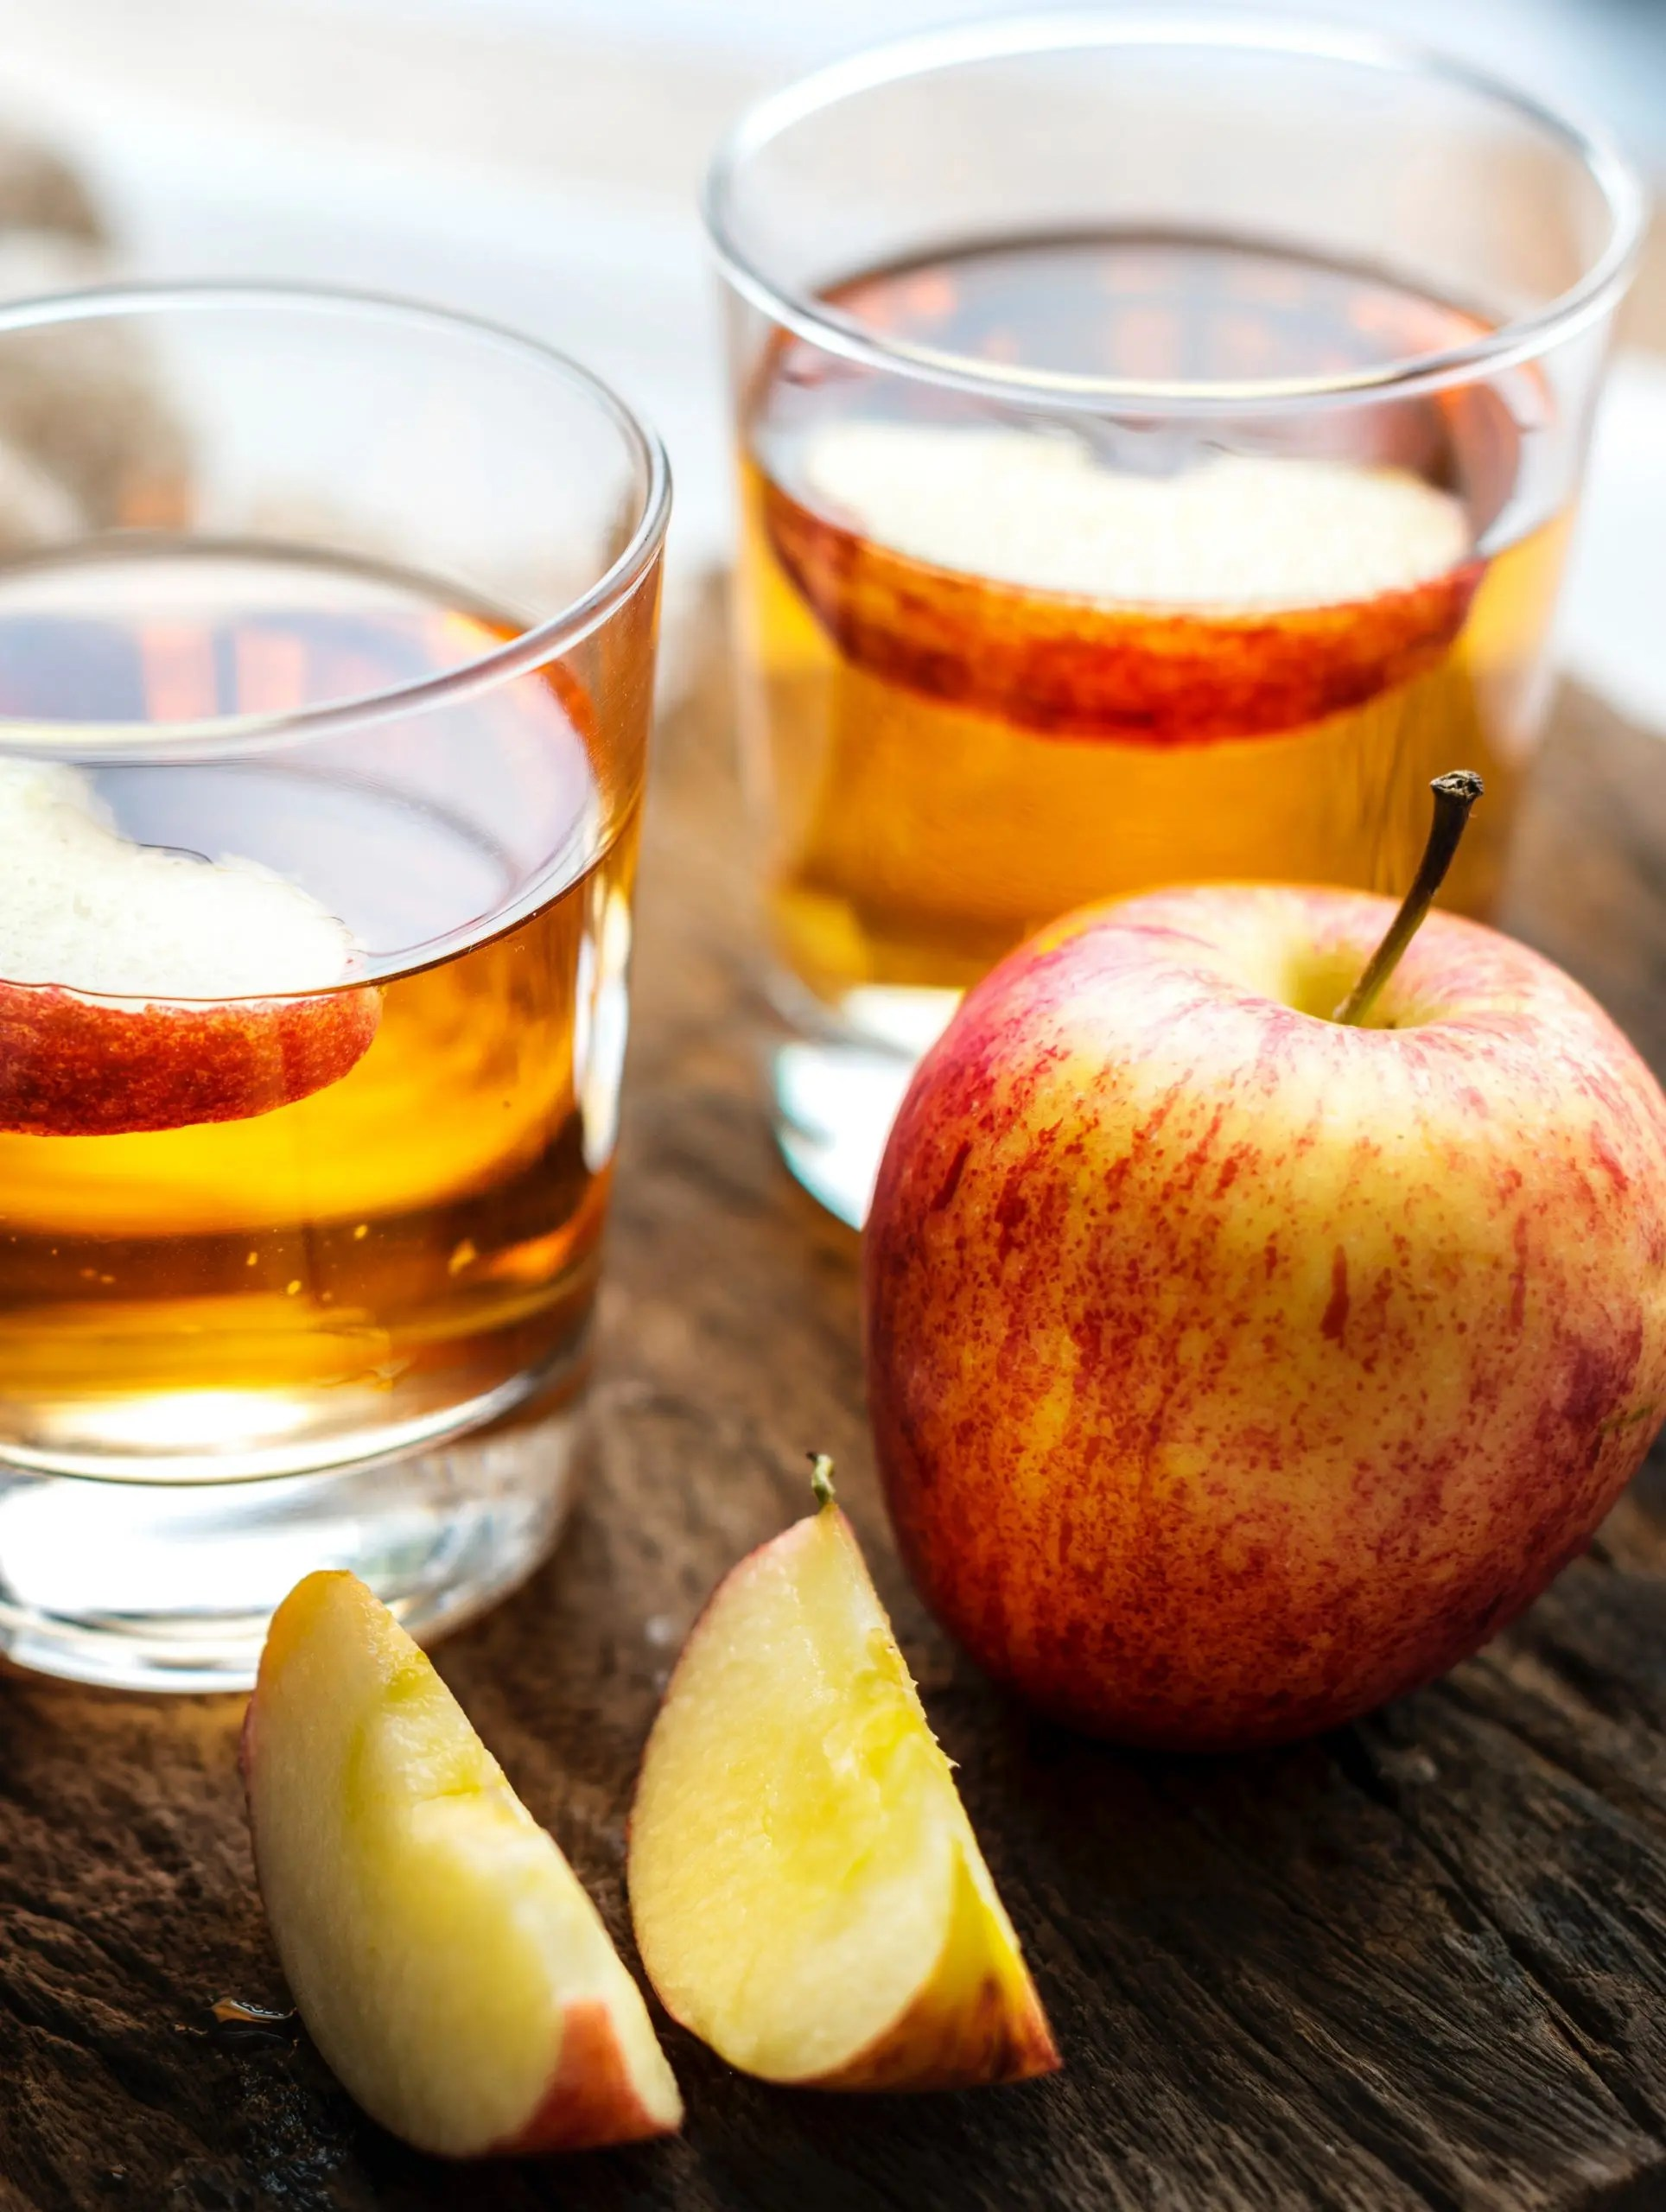 5 blends of apple tea for better health and well-being during the cold season